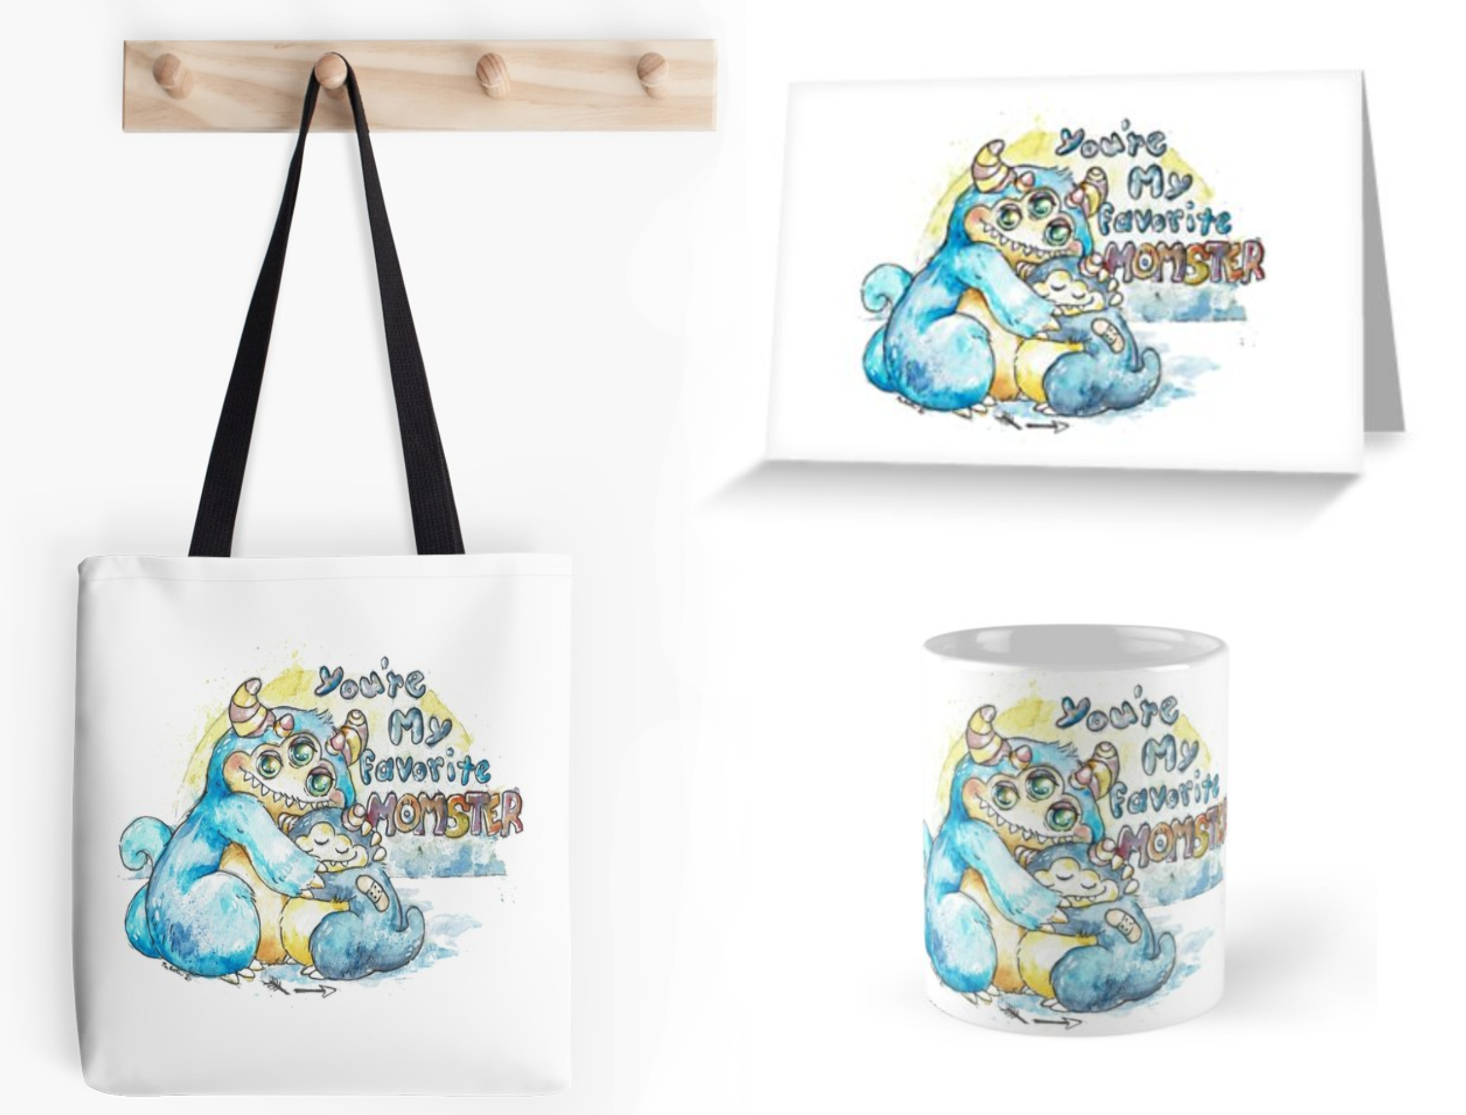 """Tote, Cards, Mugs, Shirts, Stickers, Pillows and more with my new """"You're my favorite Momster"""" design."""